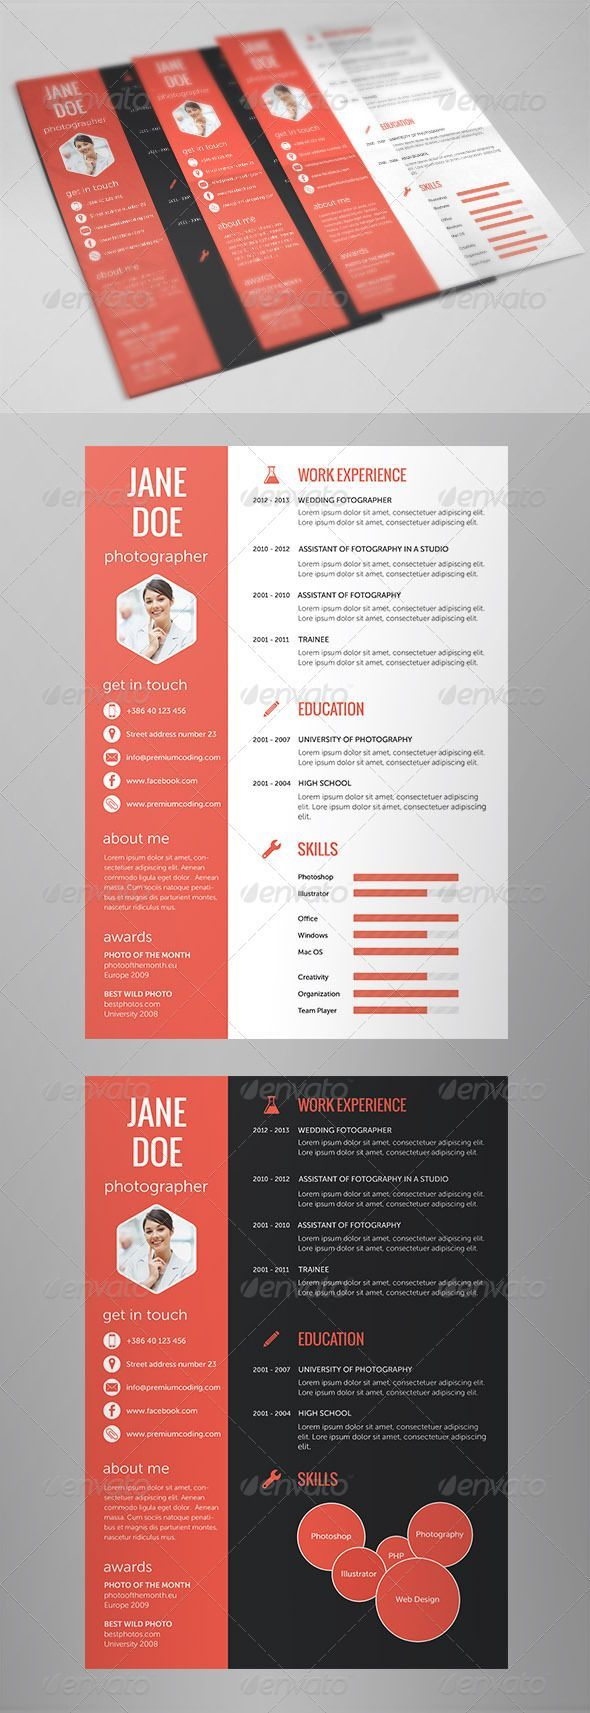 Just published a Flat Design Resume which will help you with your work applications :) goob